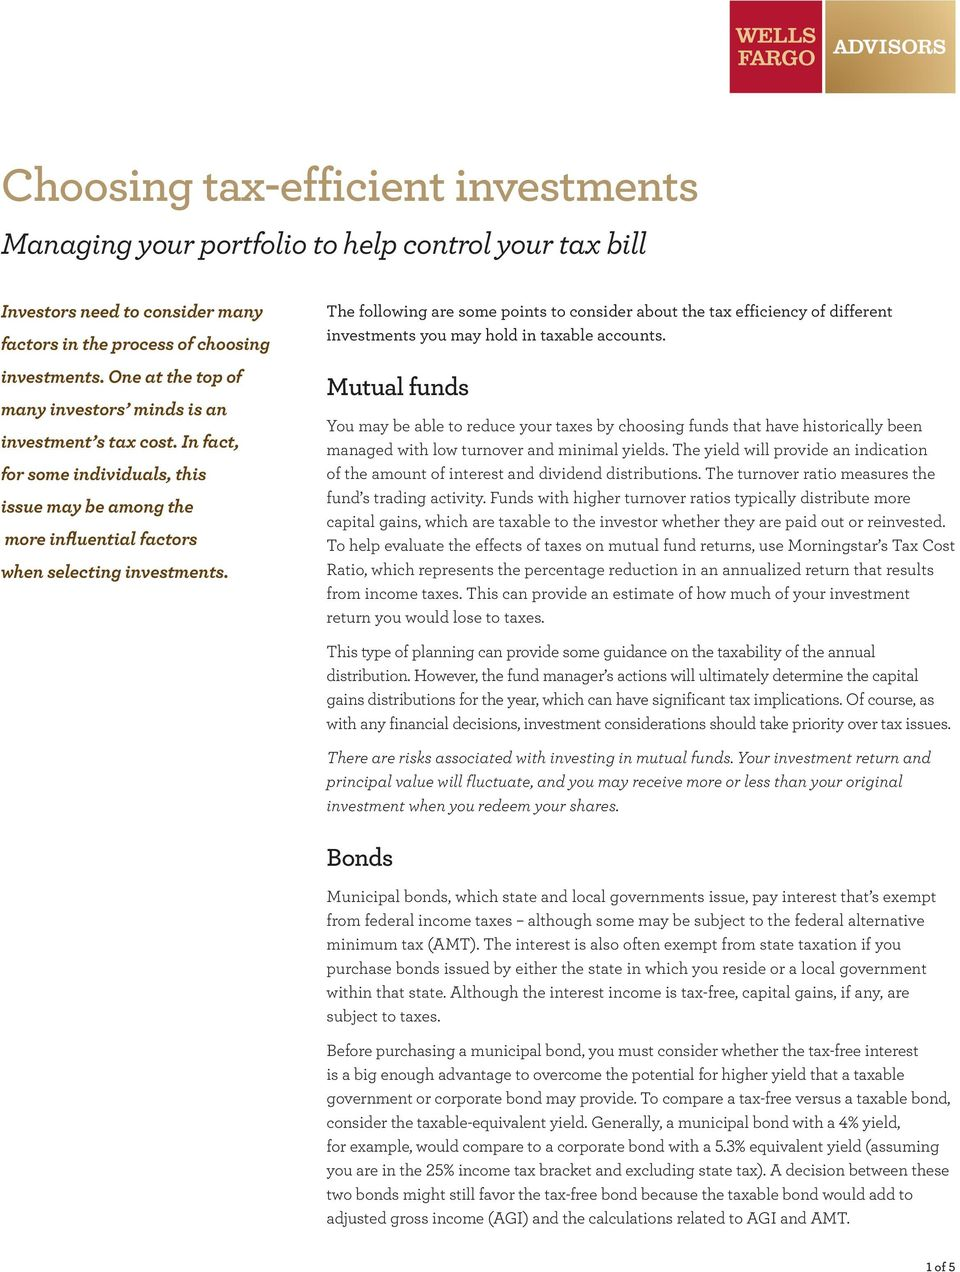 The following are some points to consider about the tax efficiency of different investments you may hold in taxable accounts.